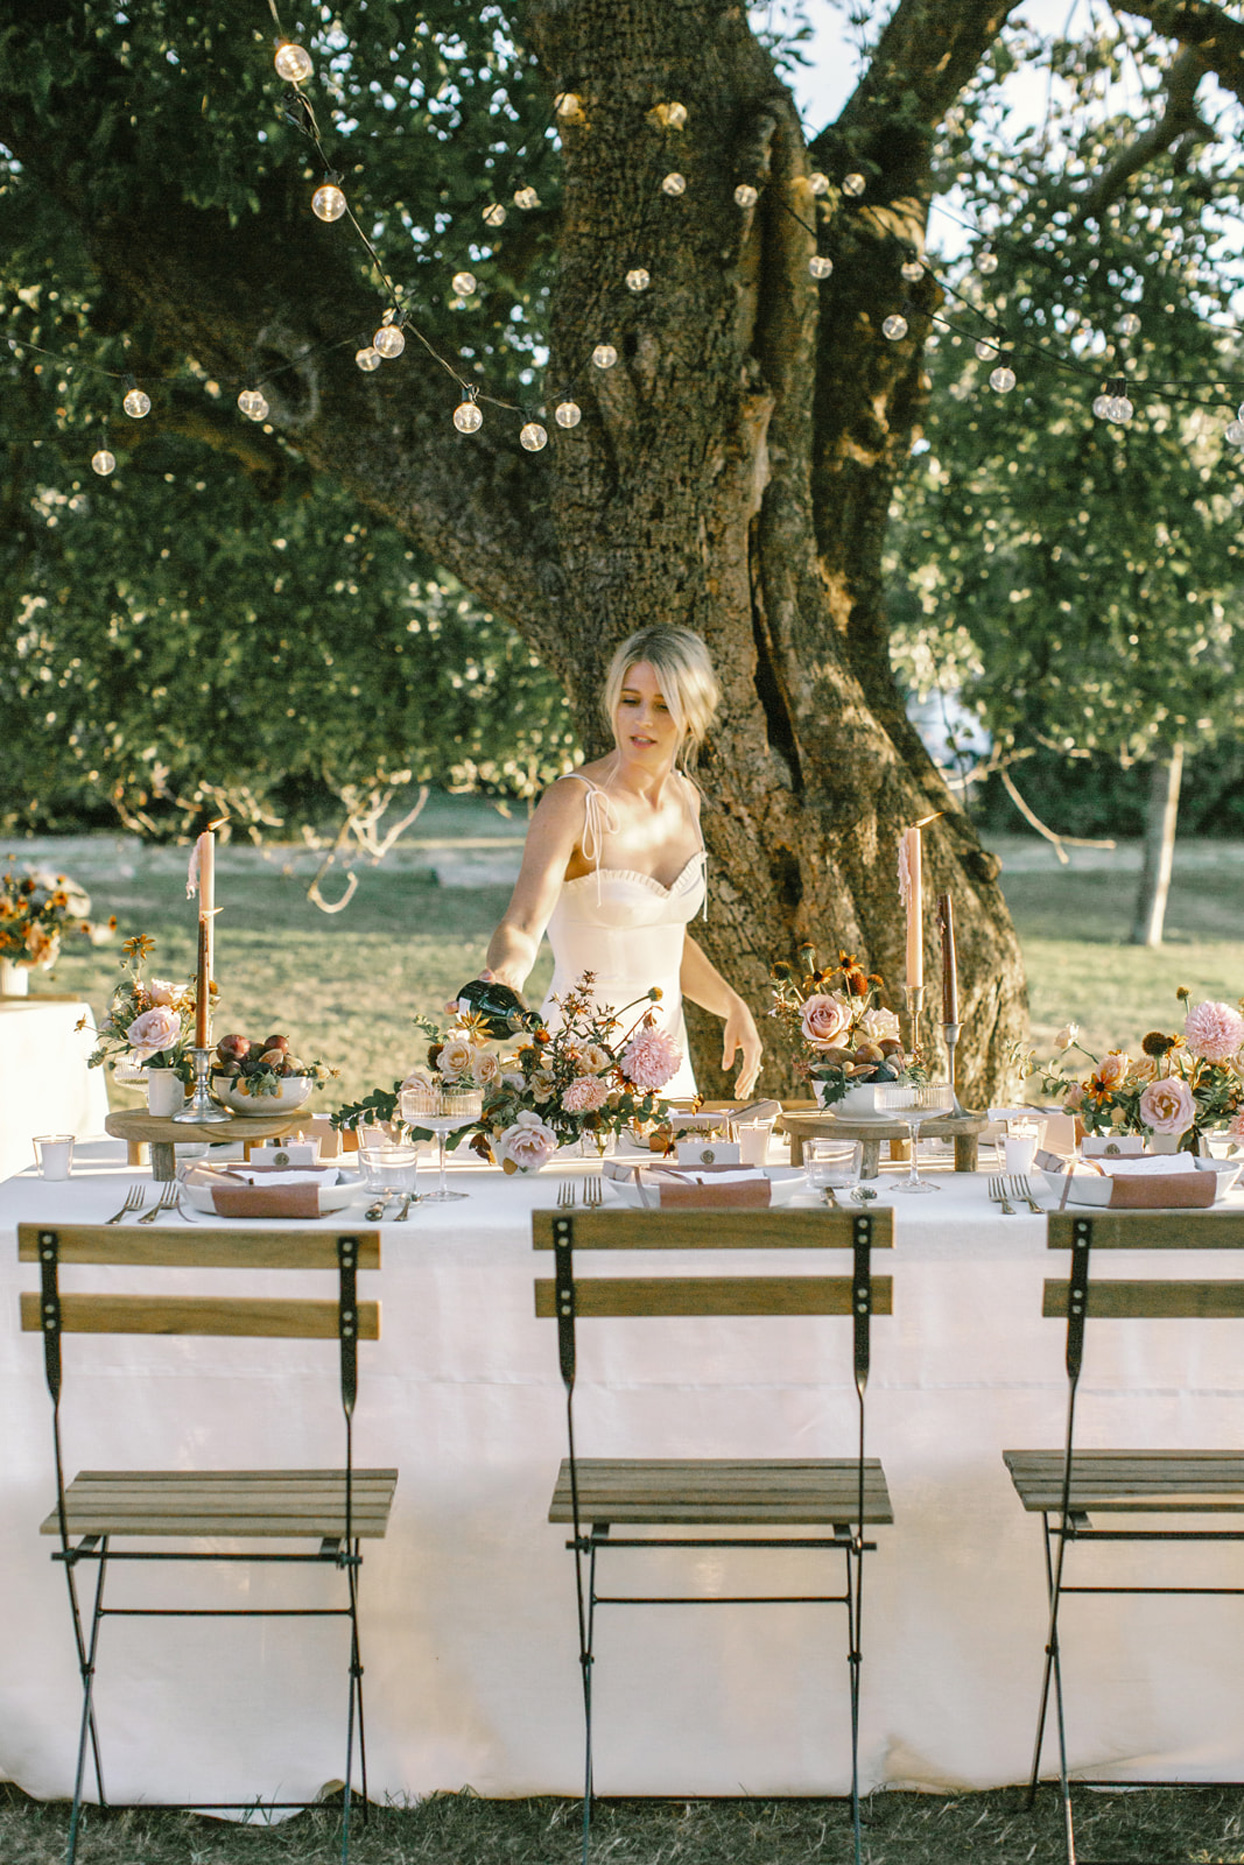 outdoor reception tables set with greenery ad candles